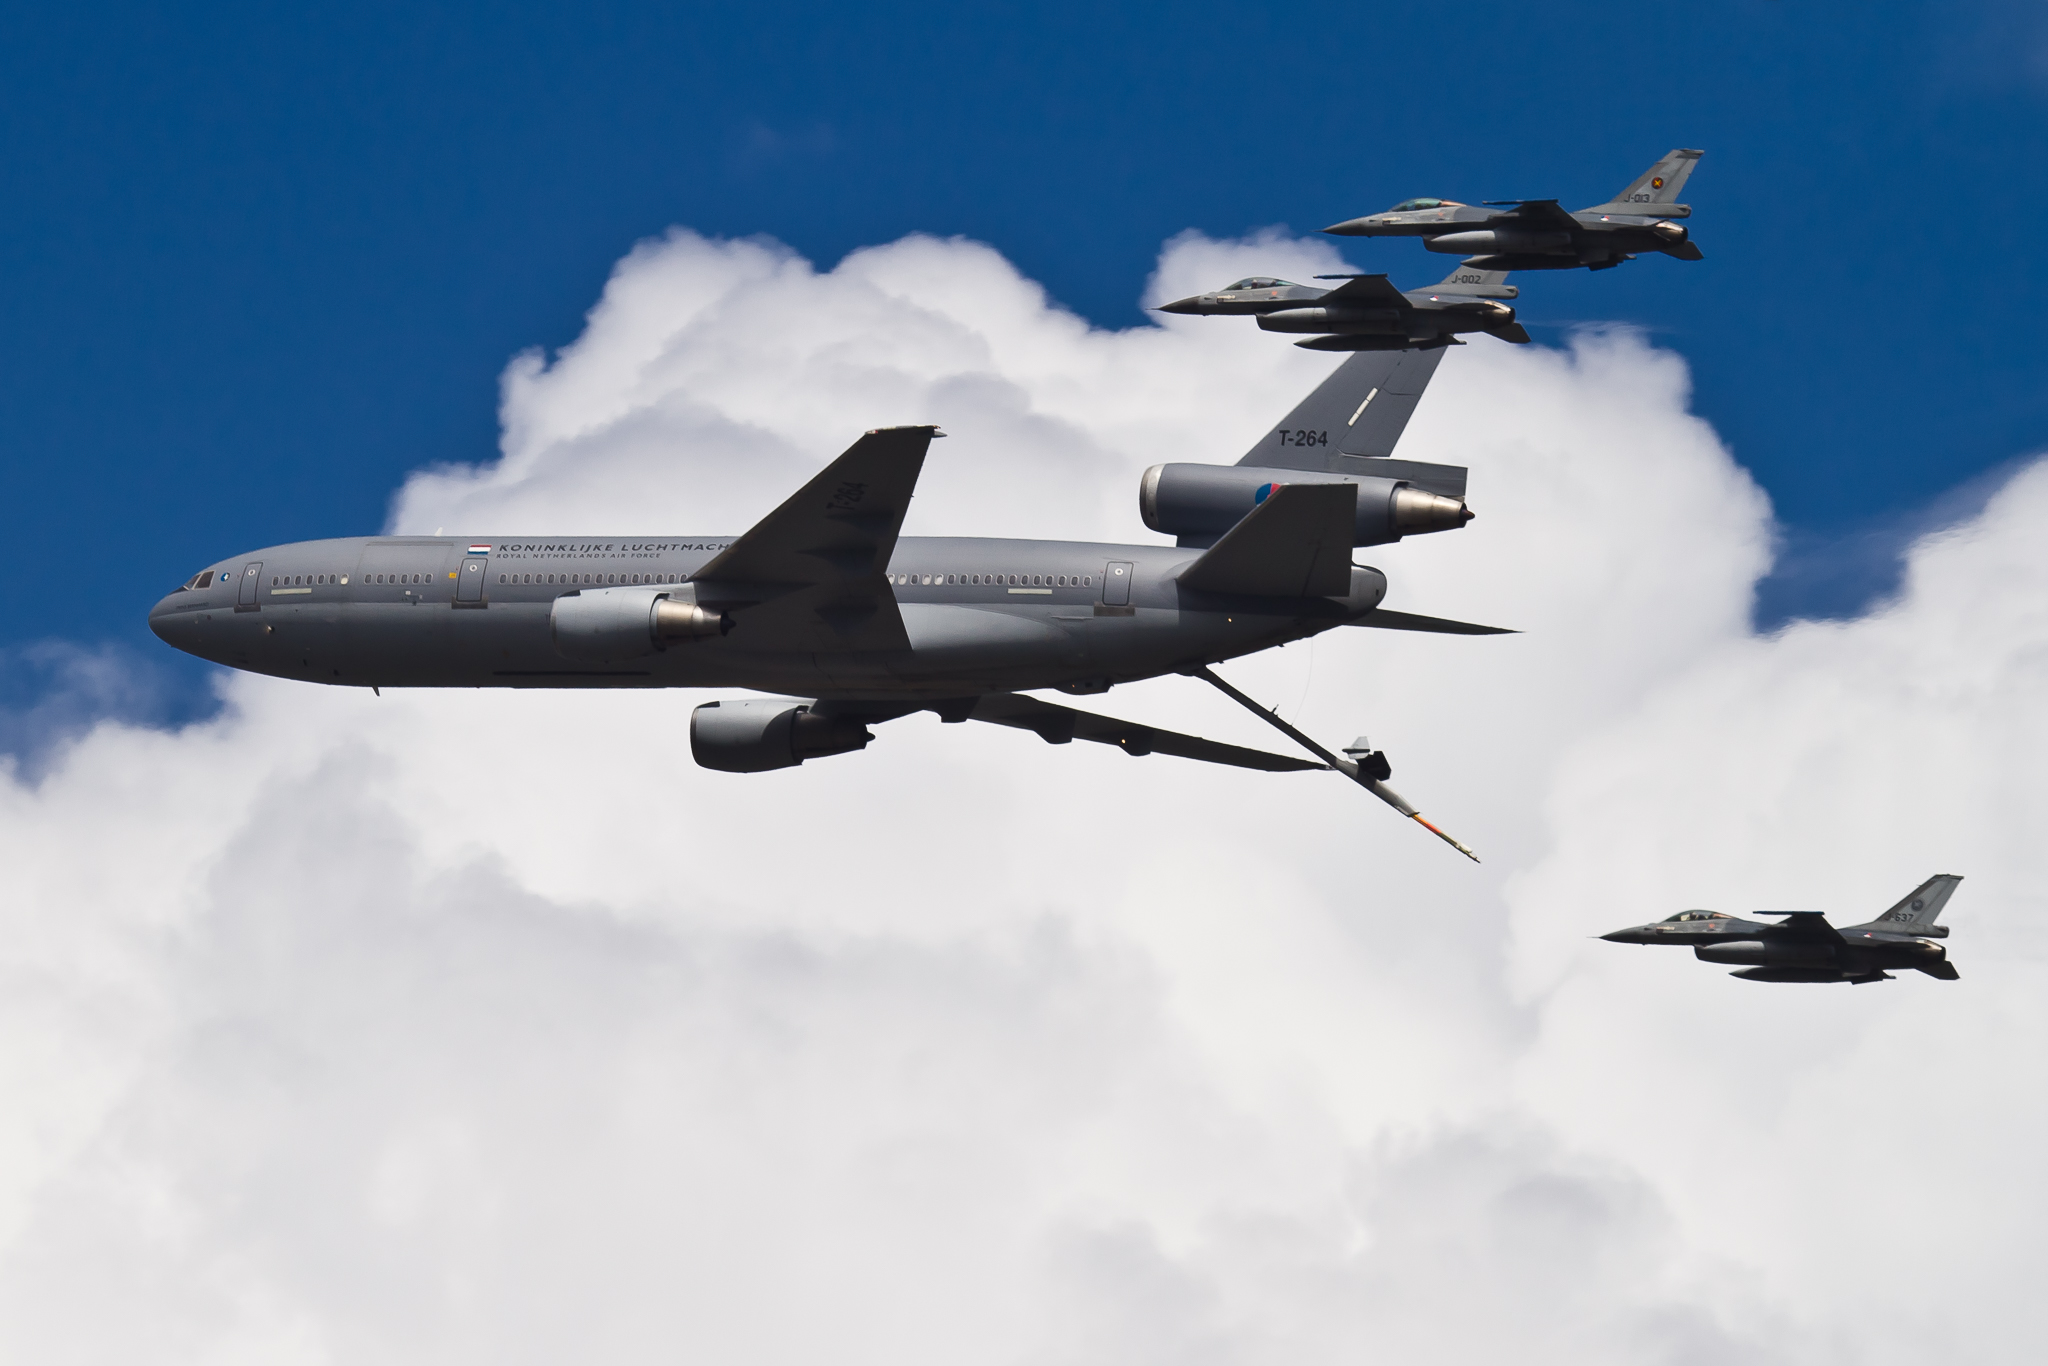 McDonnell Douglas KC-10 Extender & General Dynamics F-16 Fighting Falcon